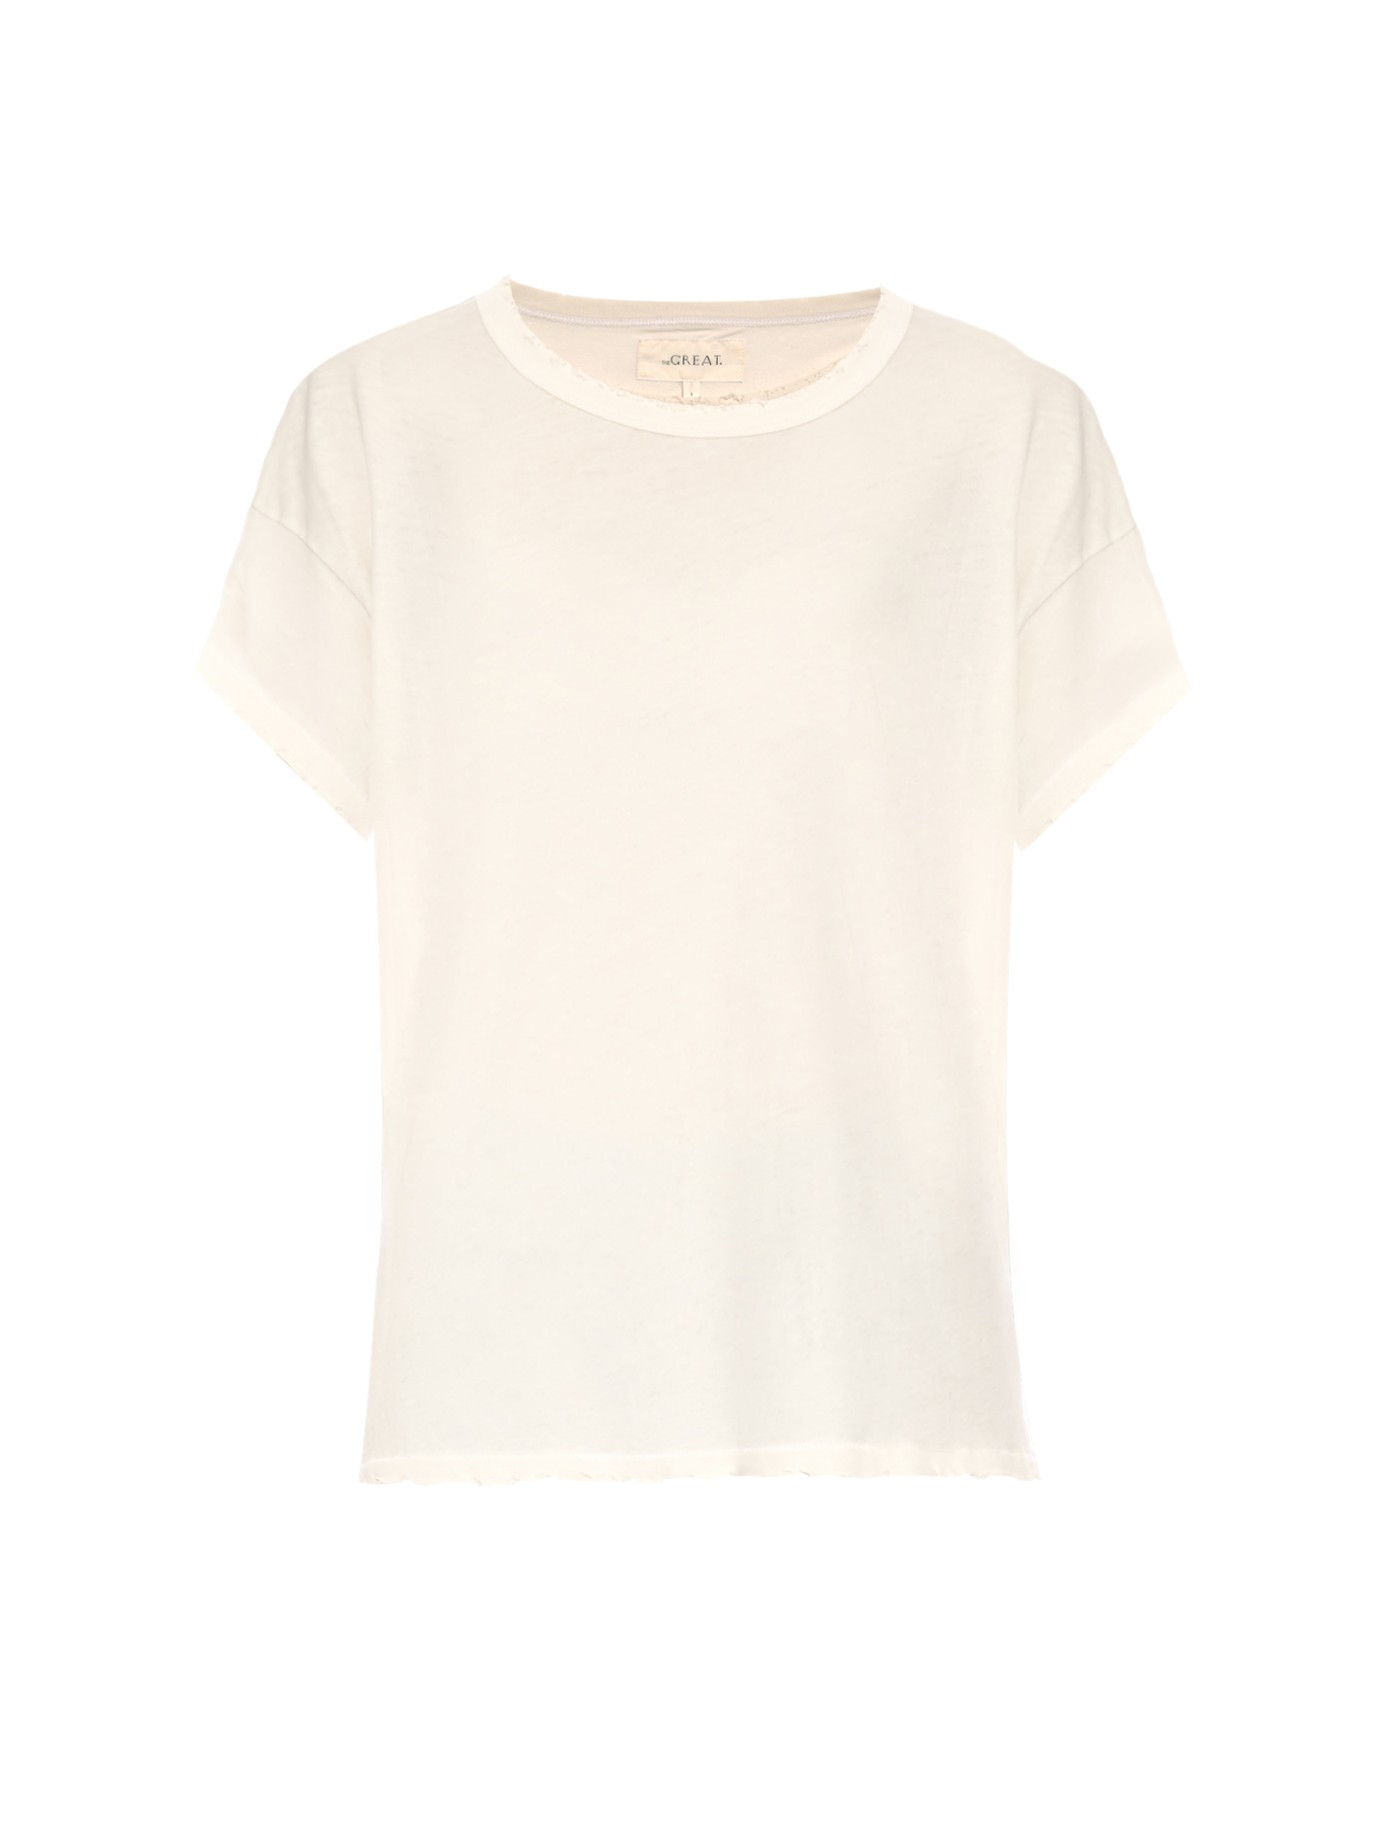 The Great The Boxy T Shirt In White Lyst